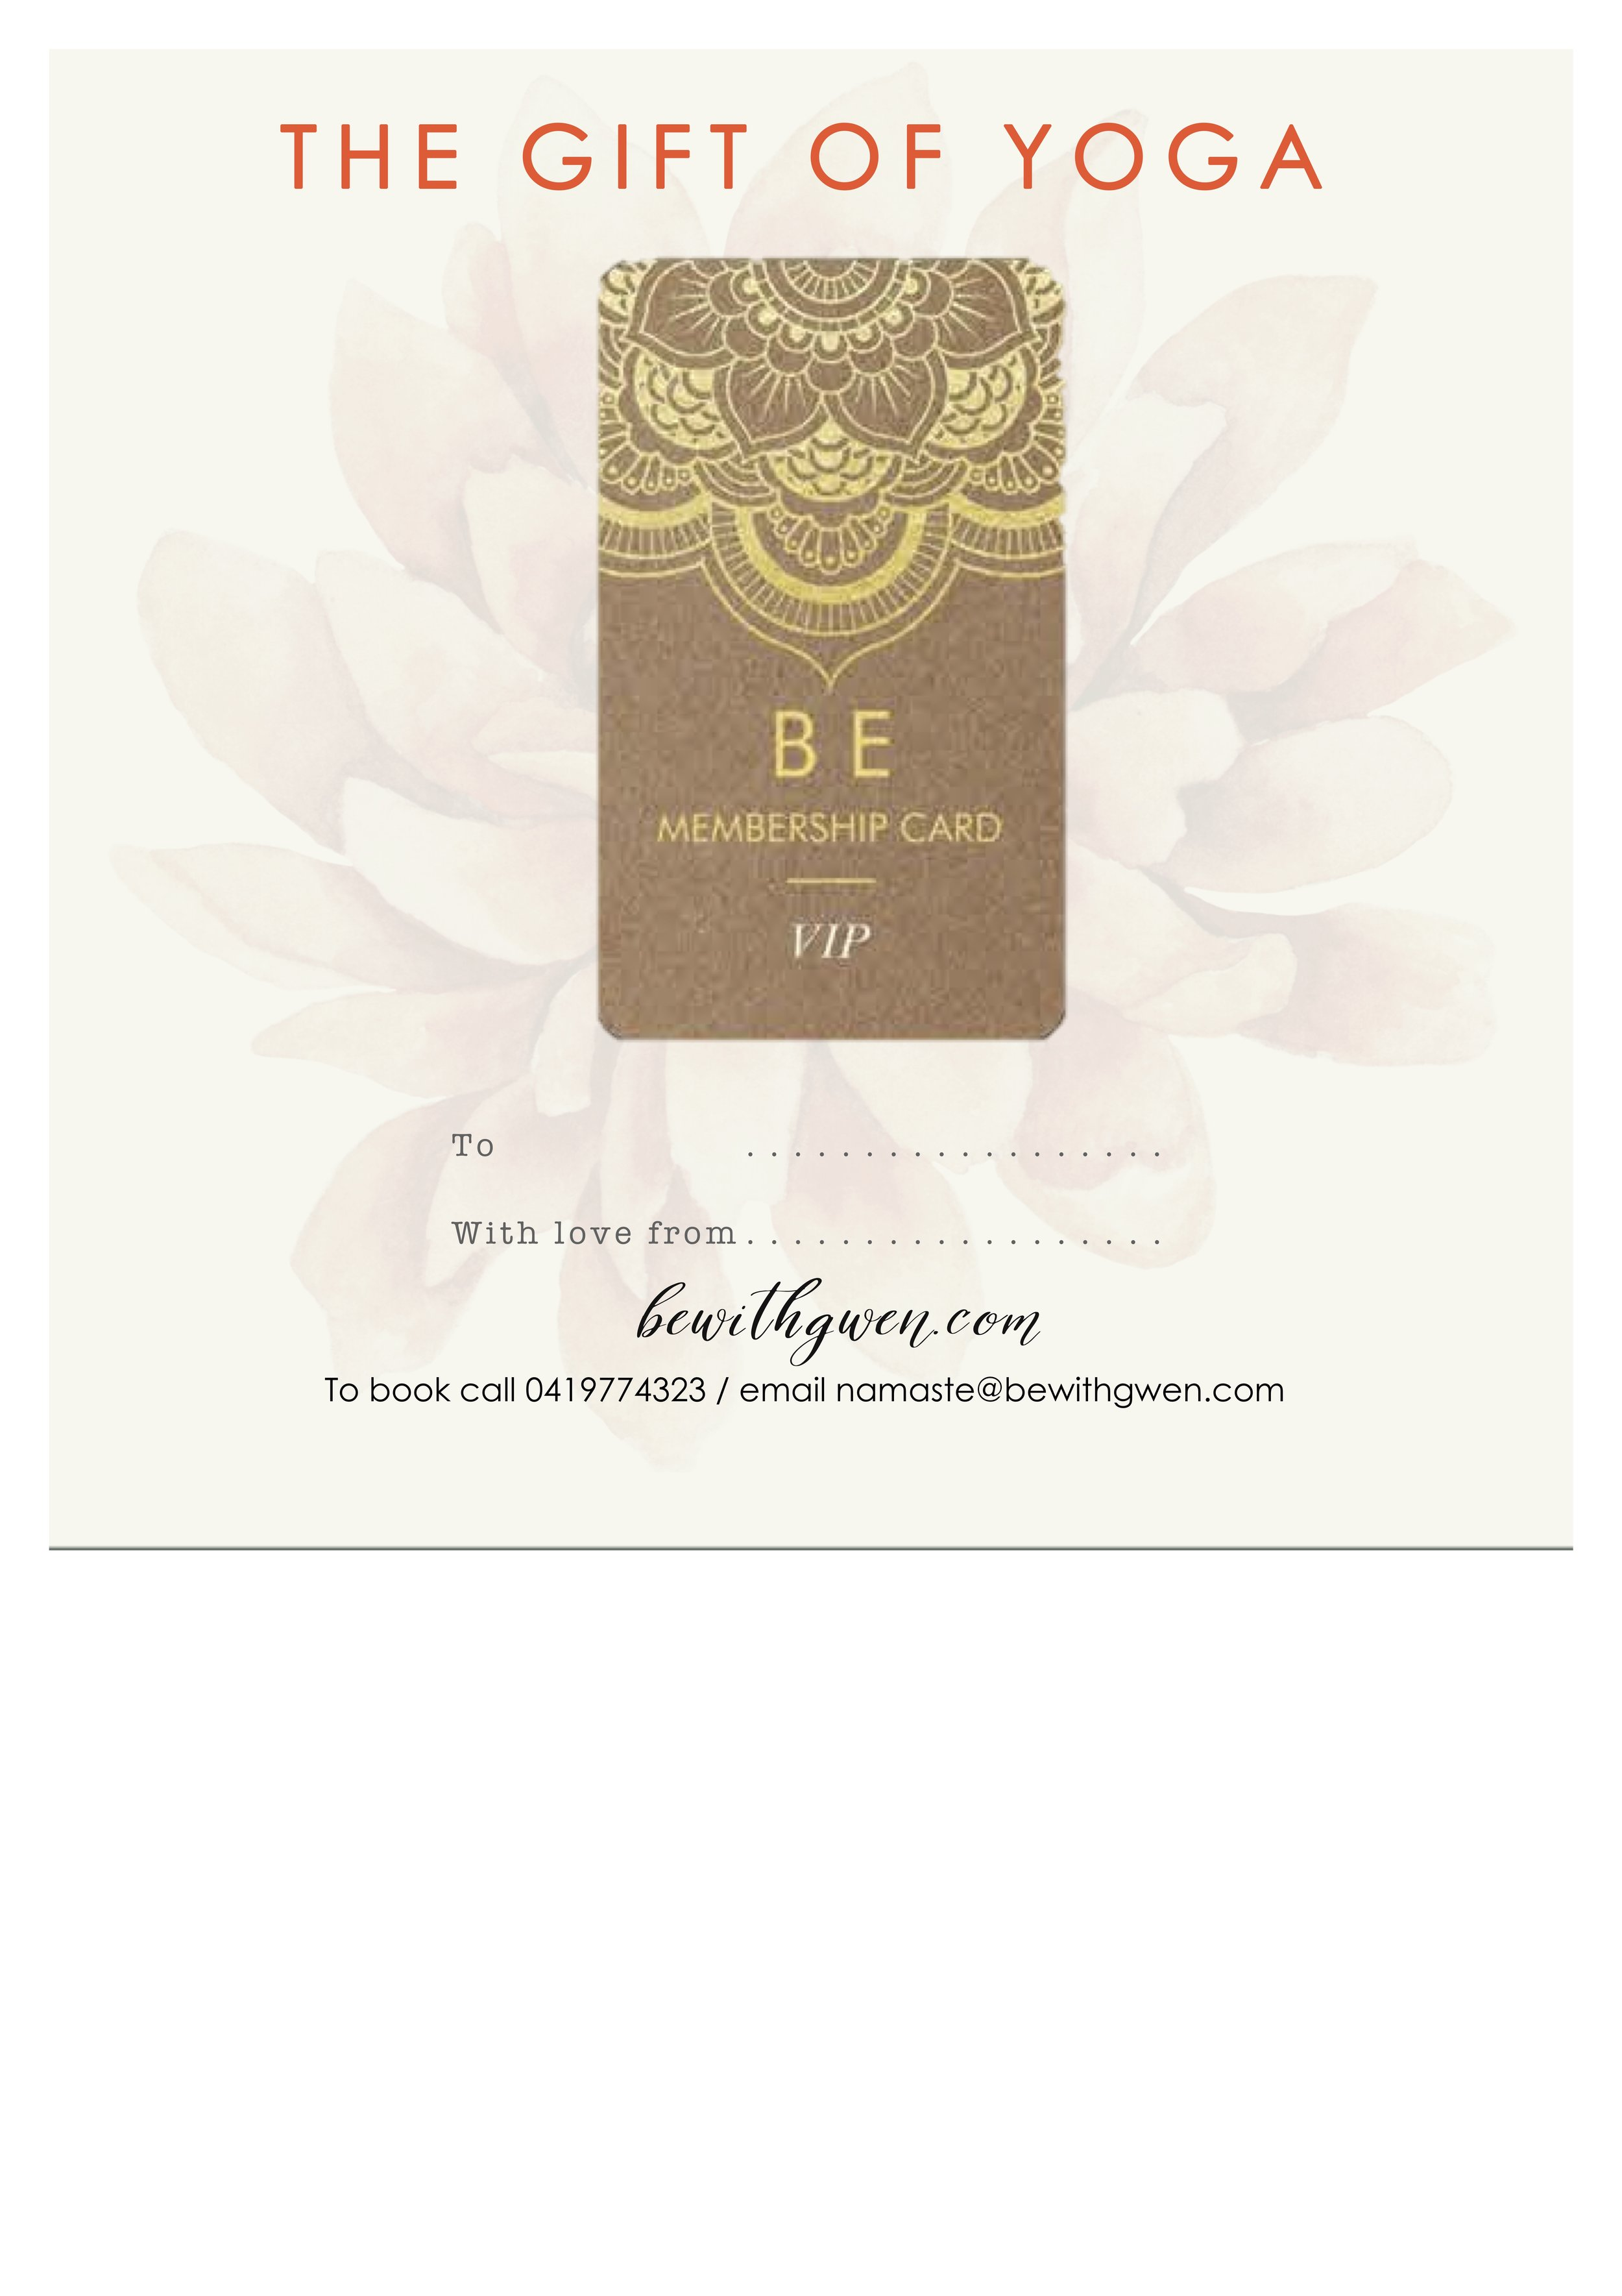 Gift Voucher - Give the gift of yoga to someone you care for! Email gwen namaste@bewithgwen.com or send a text to 0419774323 for your purchase.